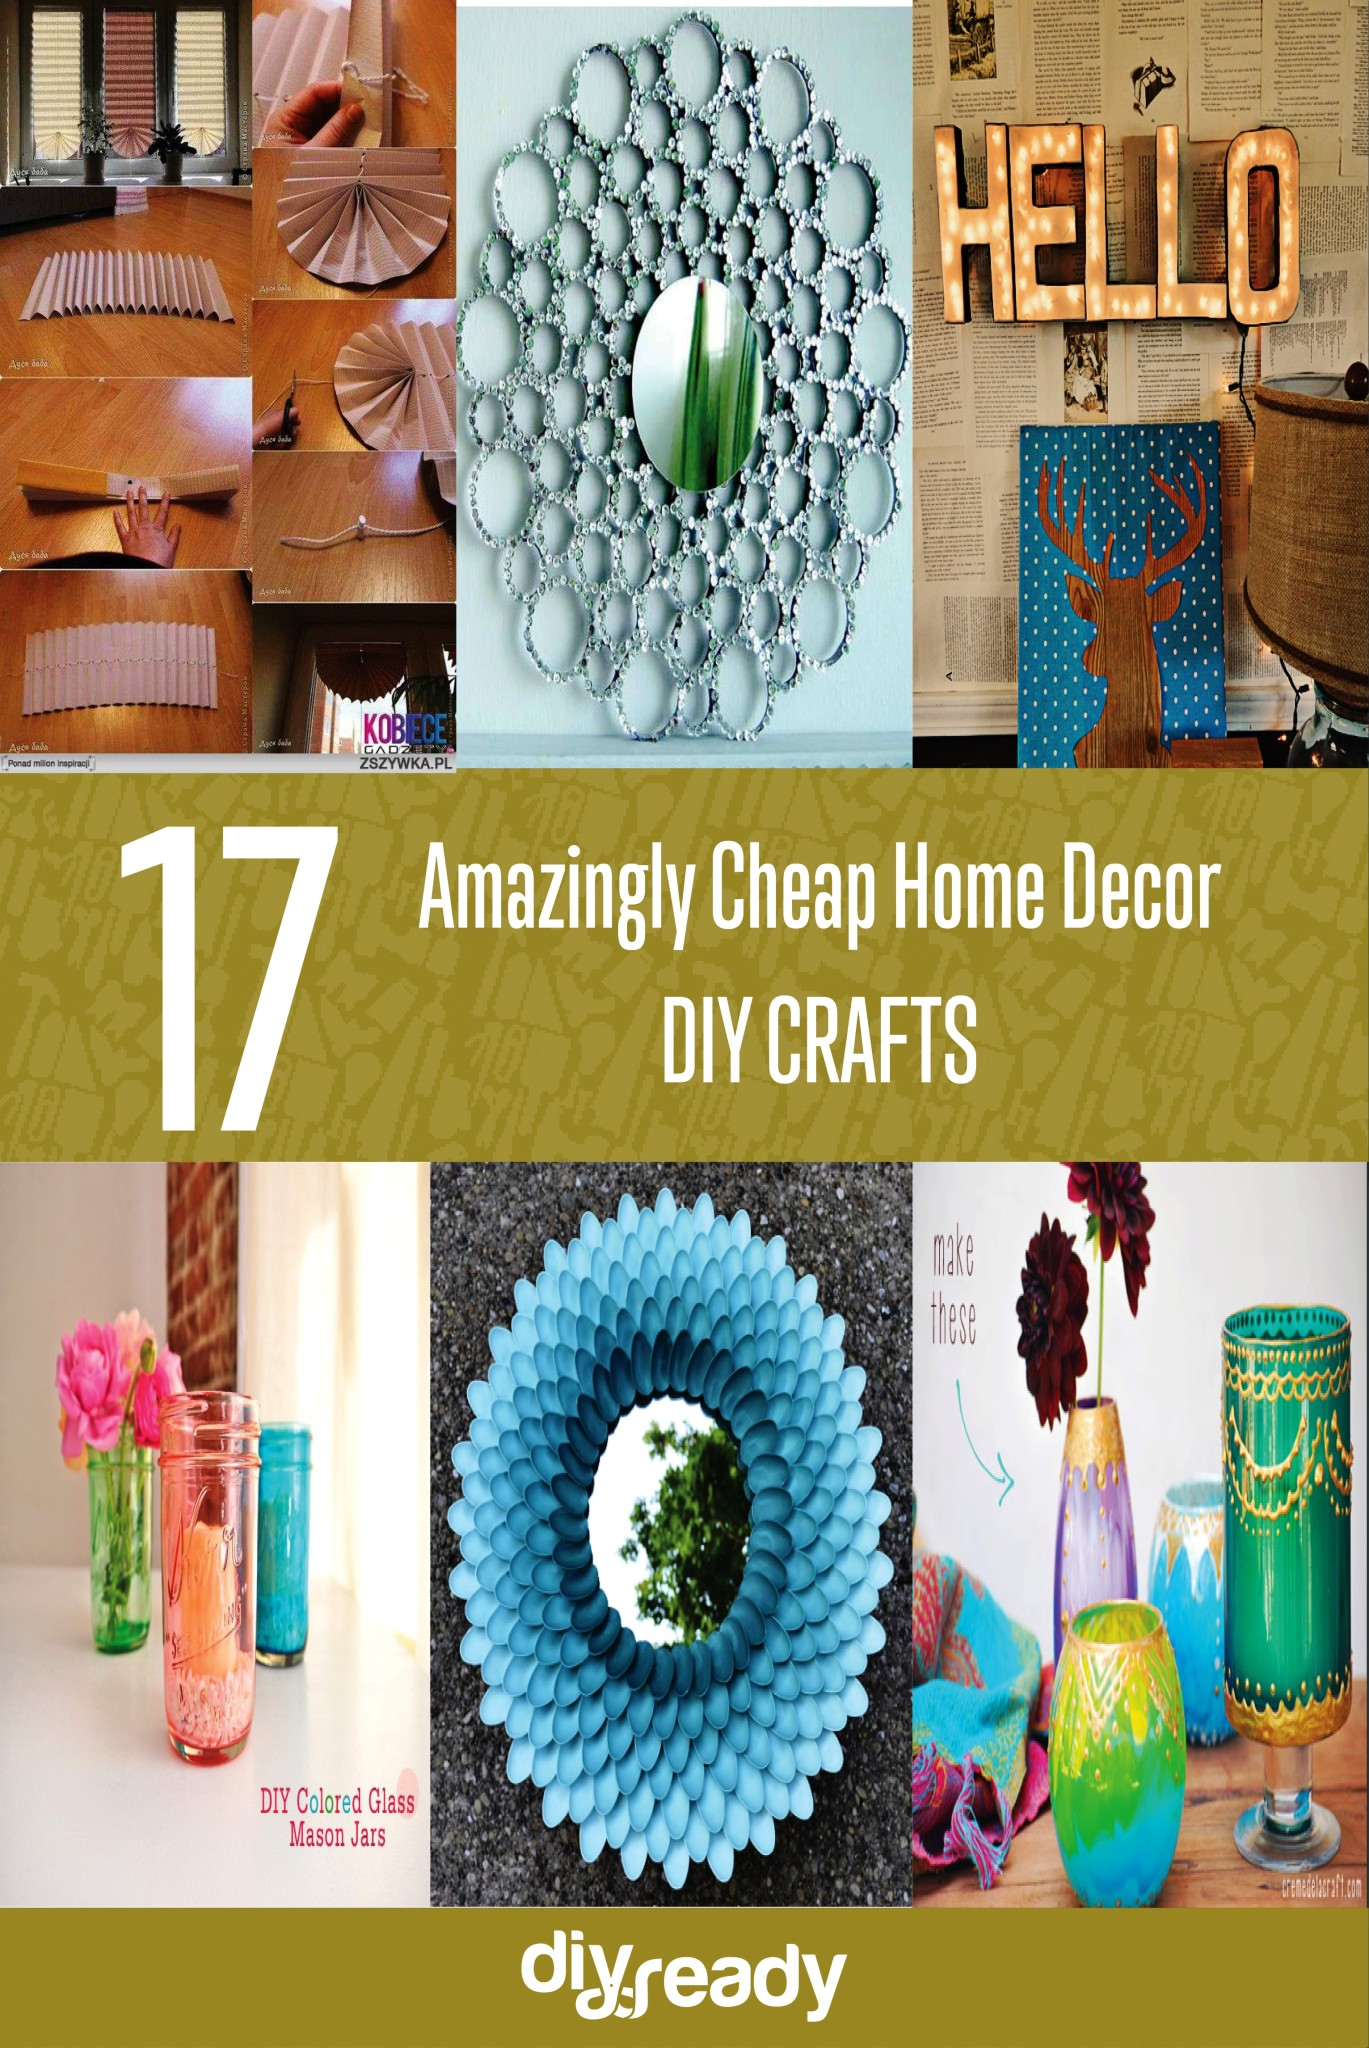 17 amazingly cheap home decor diy crafts - Cheap Decor